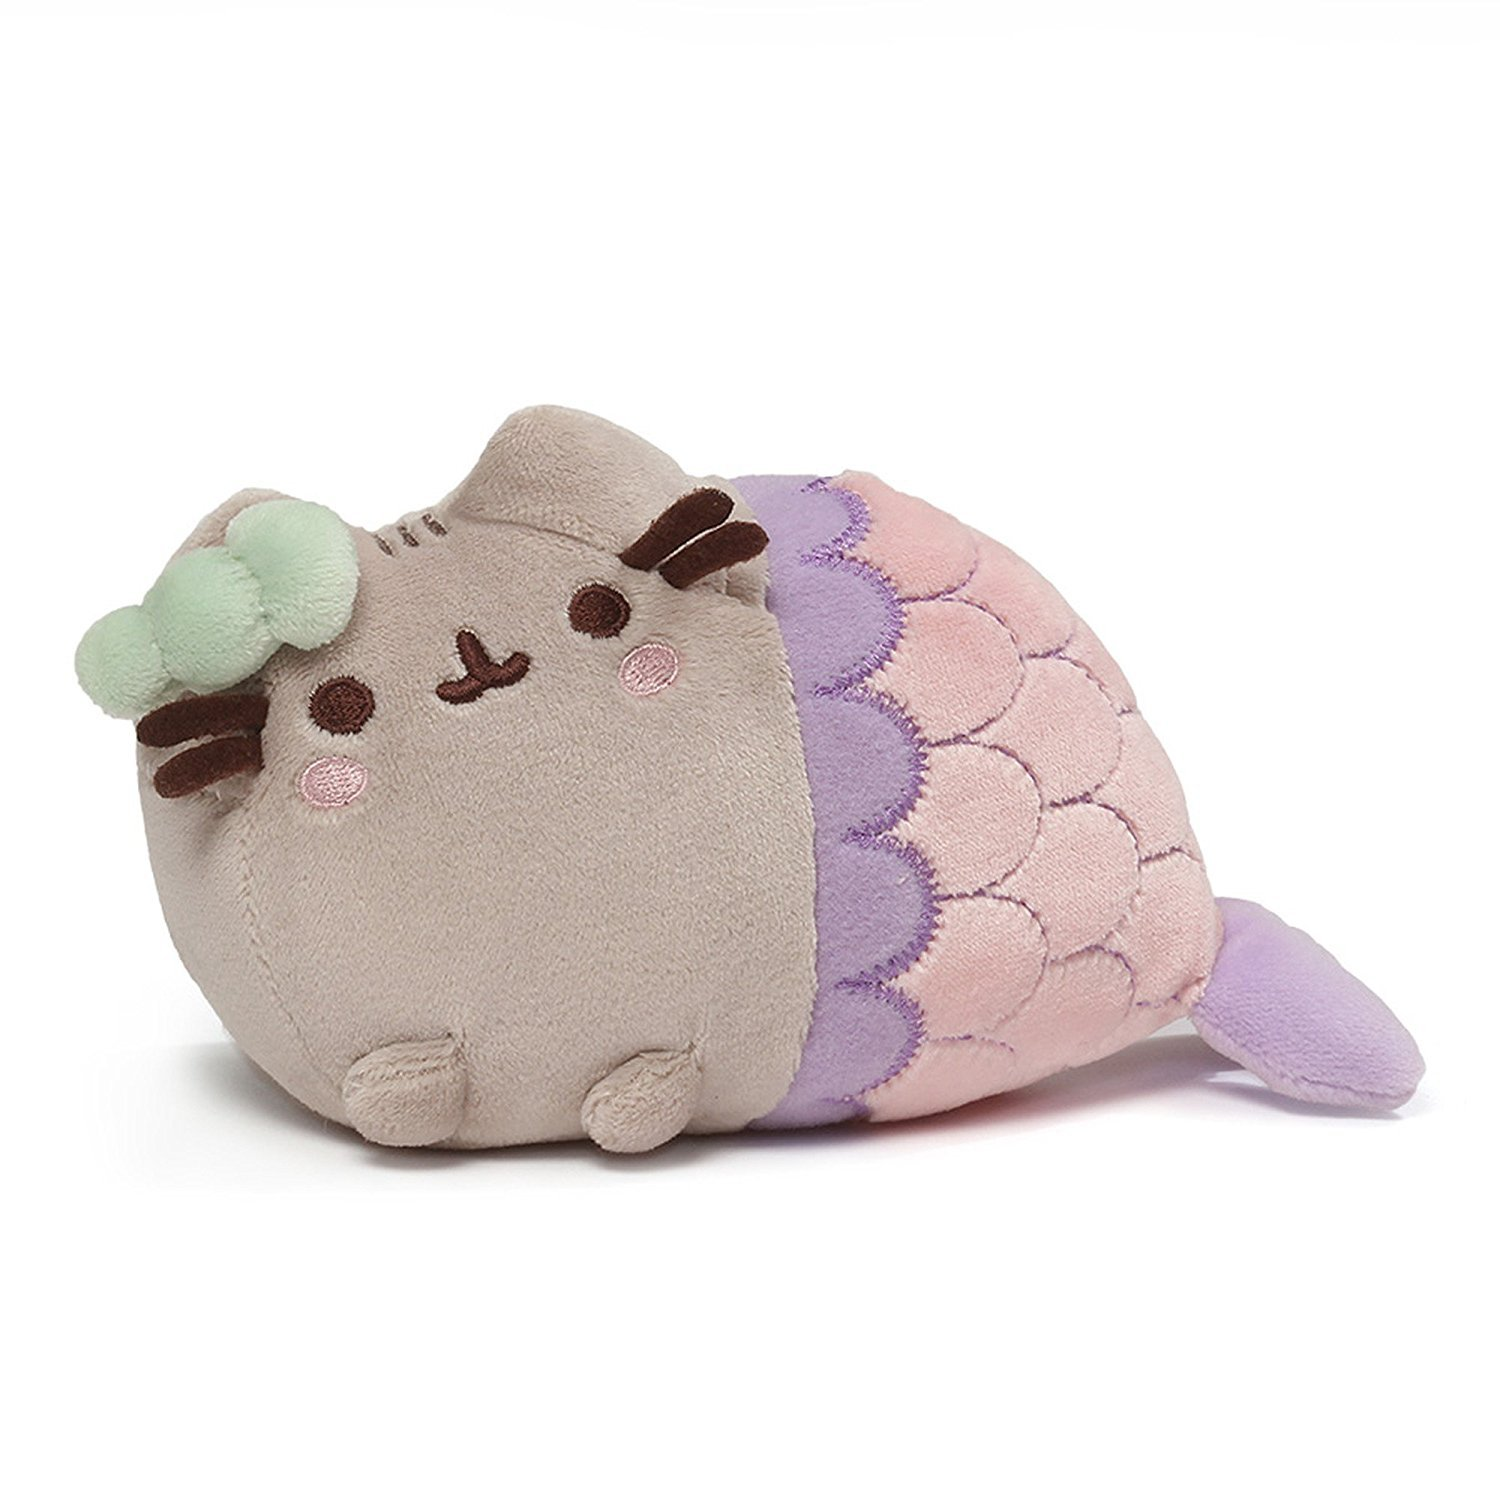 Pusheen The Cat Mermaid Spiral Shell Pink Soft Plush Gund 18cm